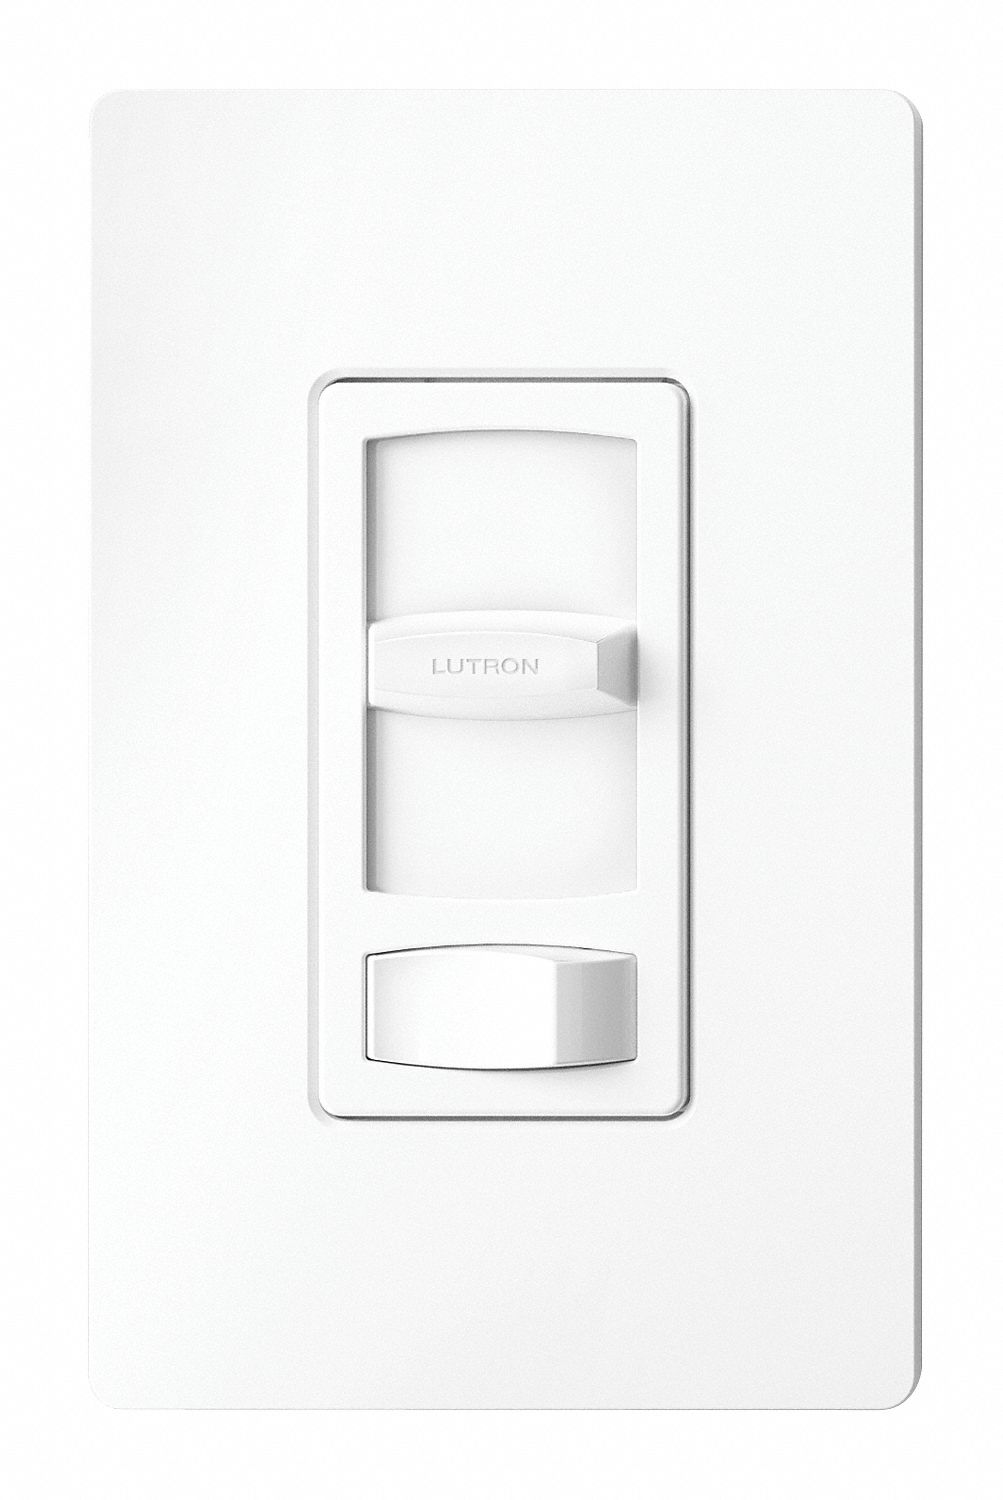 Lutron Diva Led Dimmer For Dimmable Led Halogen And Incandescent Bulbs Single Pole Or 3 Way Dvsccl 153p Tp Taupe Wall Dimmer Switches Amazon Com